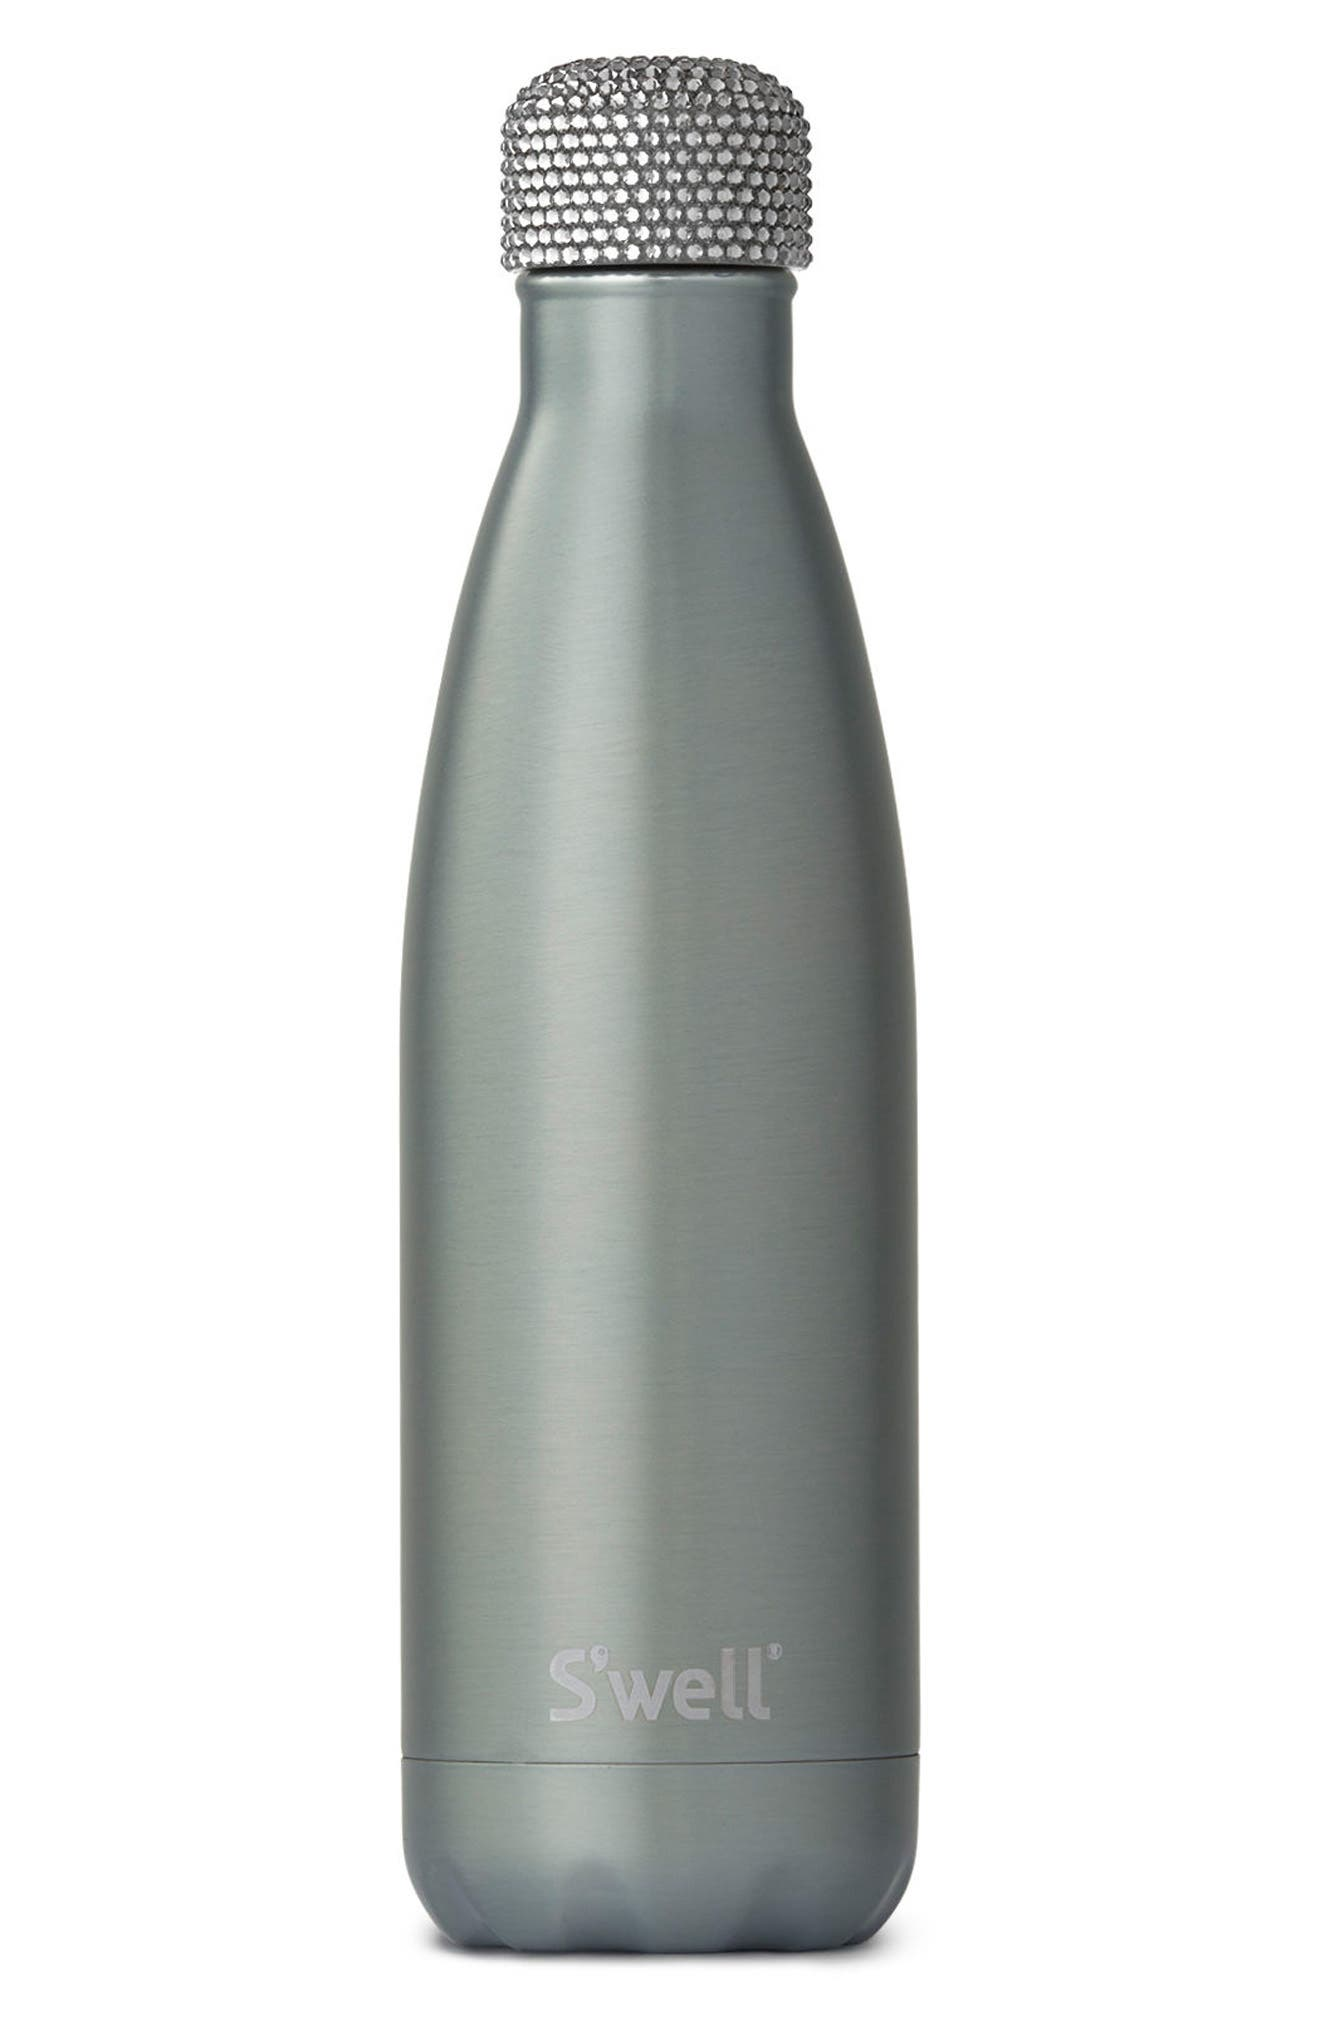 Main Image - S'well Radiance Swarovski Crystal Water Bottle (Limited Edition)